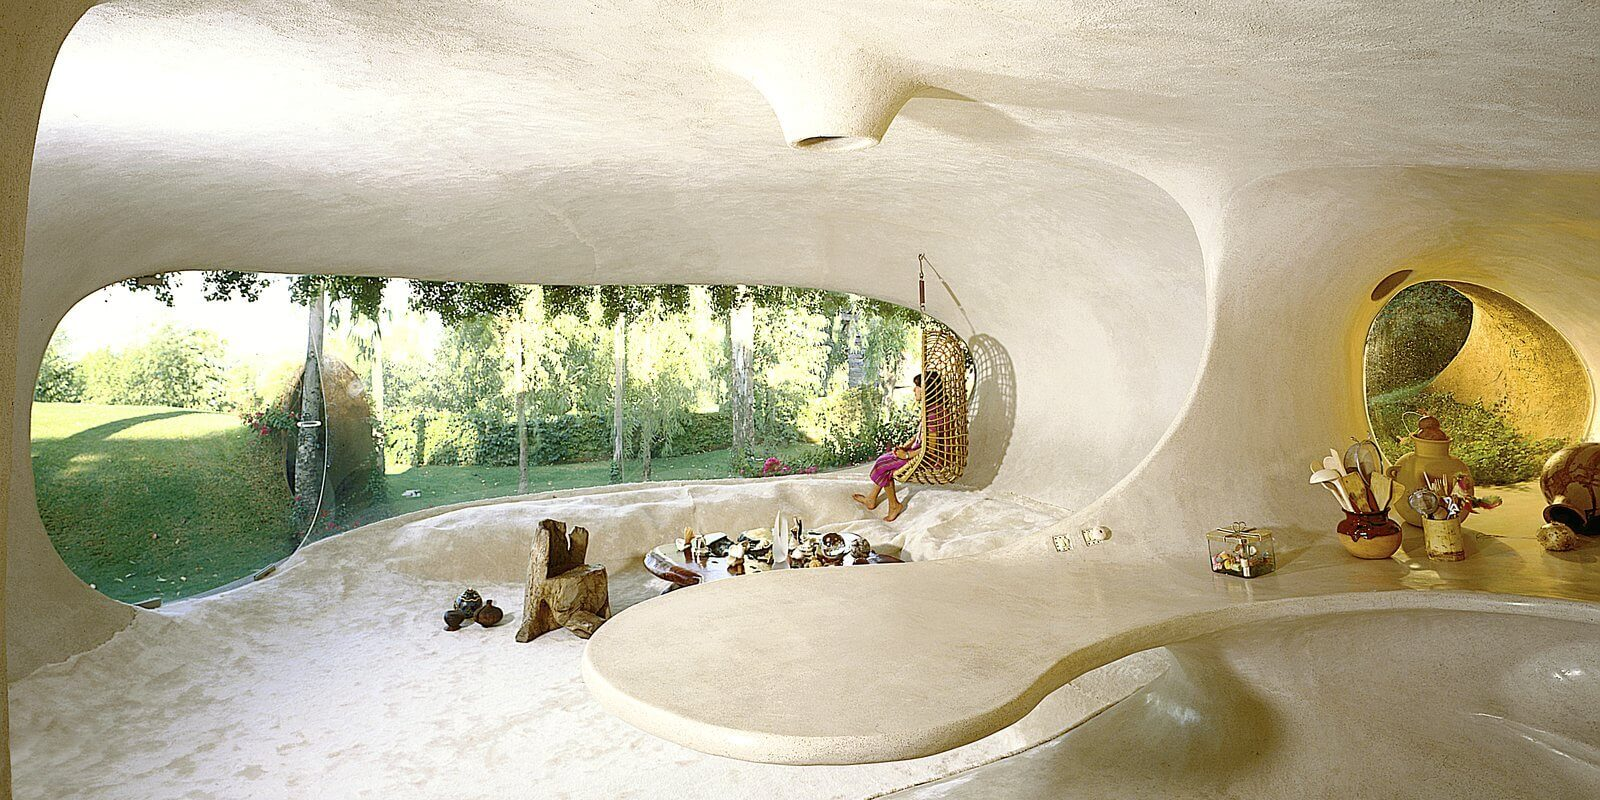 Mesmerizing Pictures Of An Underground Hobbit Style House